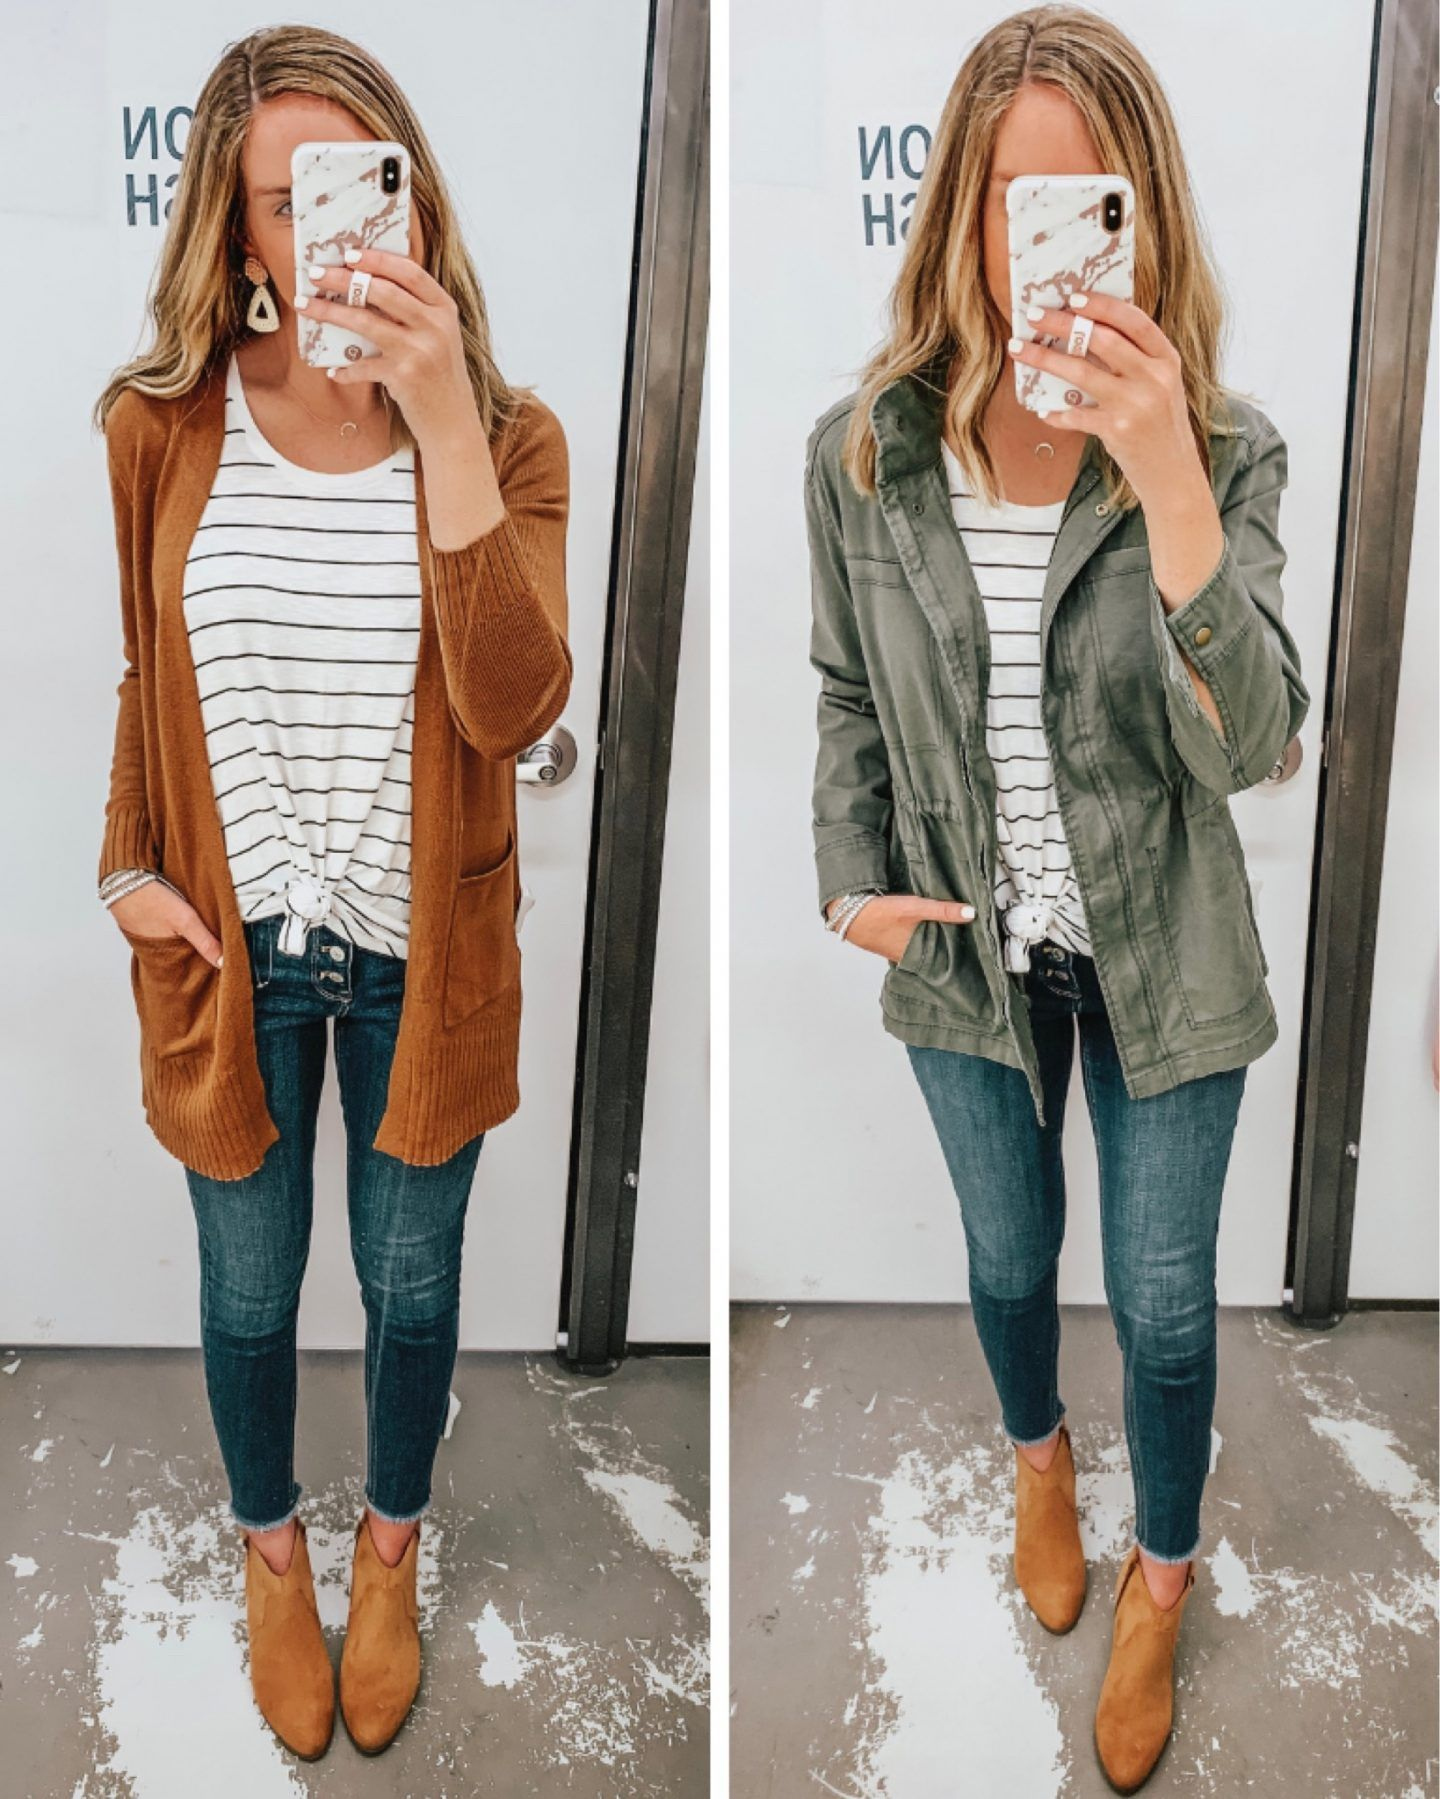 Old Navy Fall Fashion Preview 2019 - Wishes & Reality